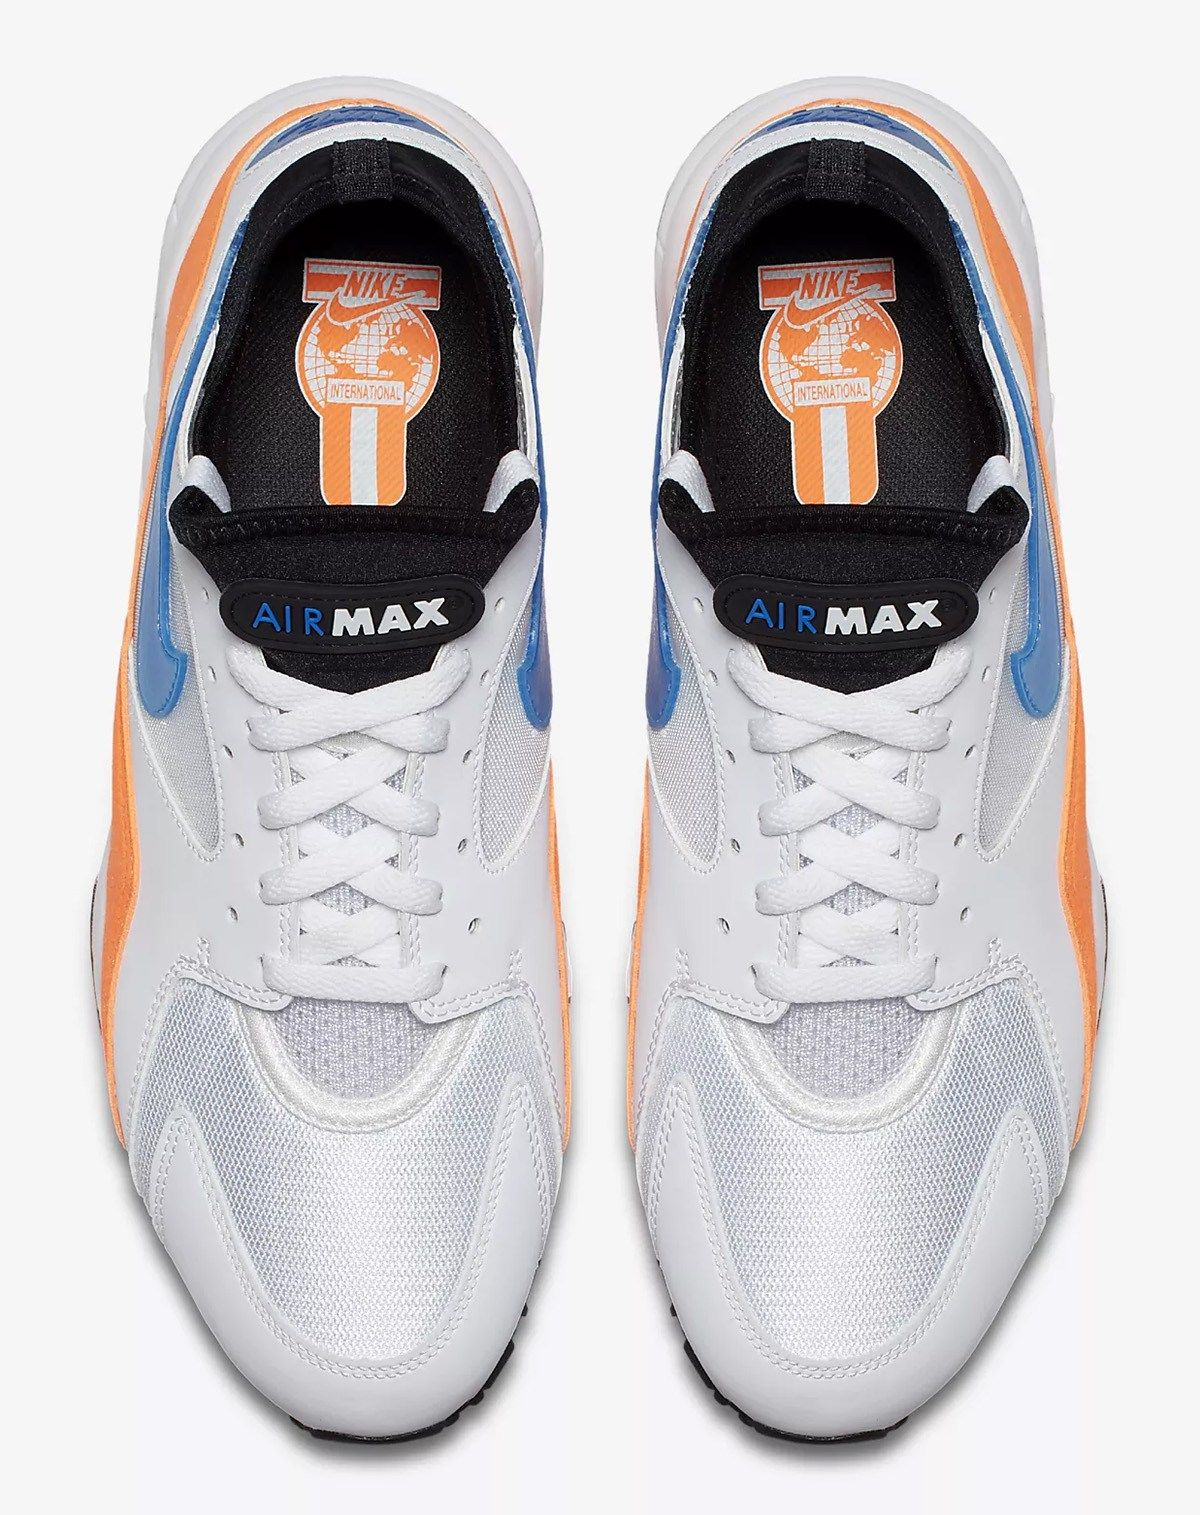 51492b194c3d Nike Air Max 93 in Total Orange Blue Nebula - EU Kicks  Sneaker Magazine